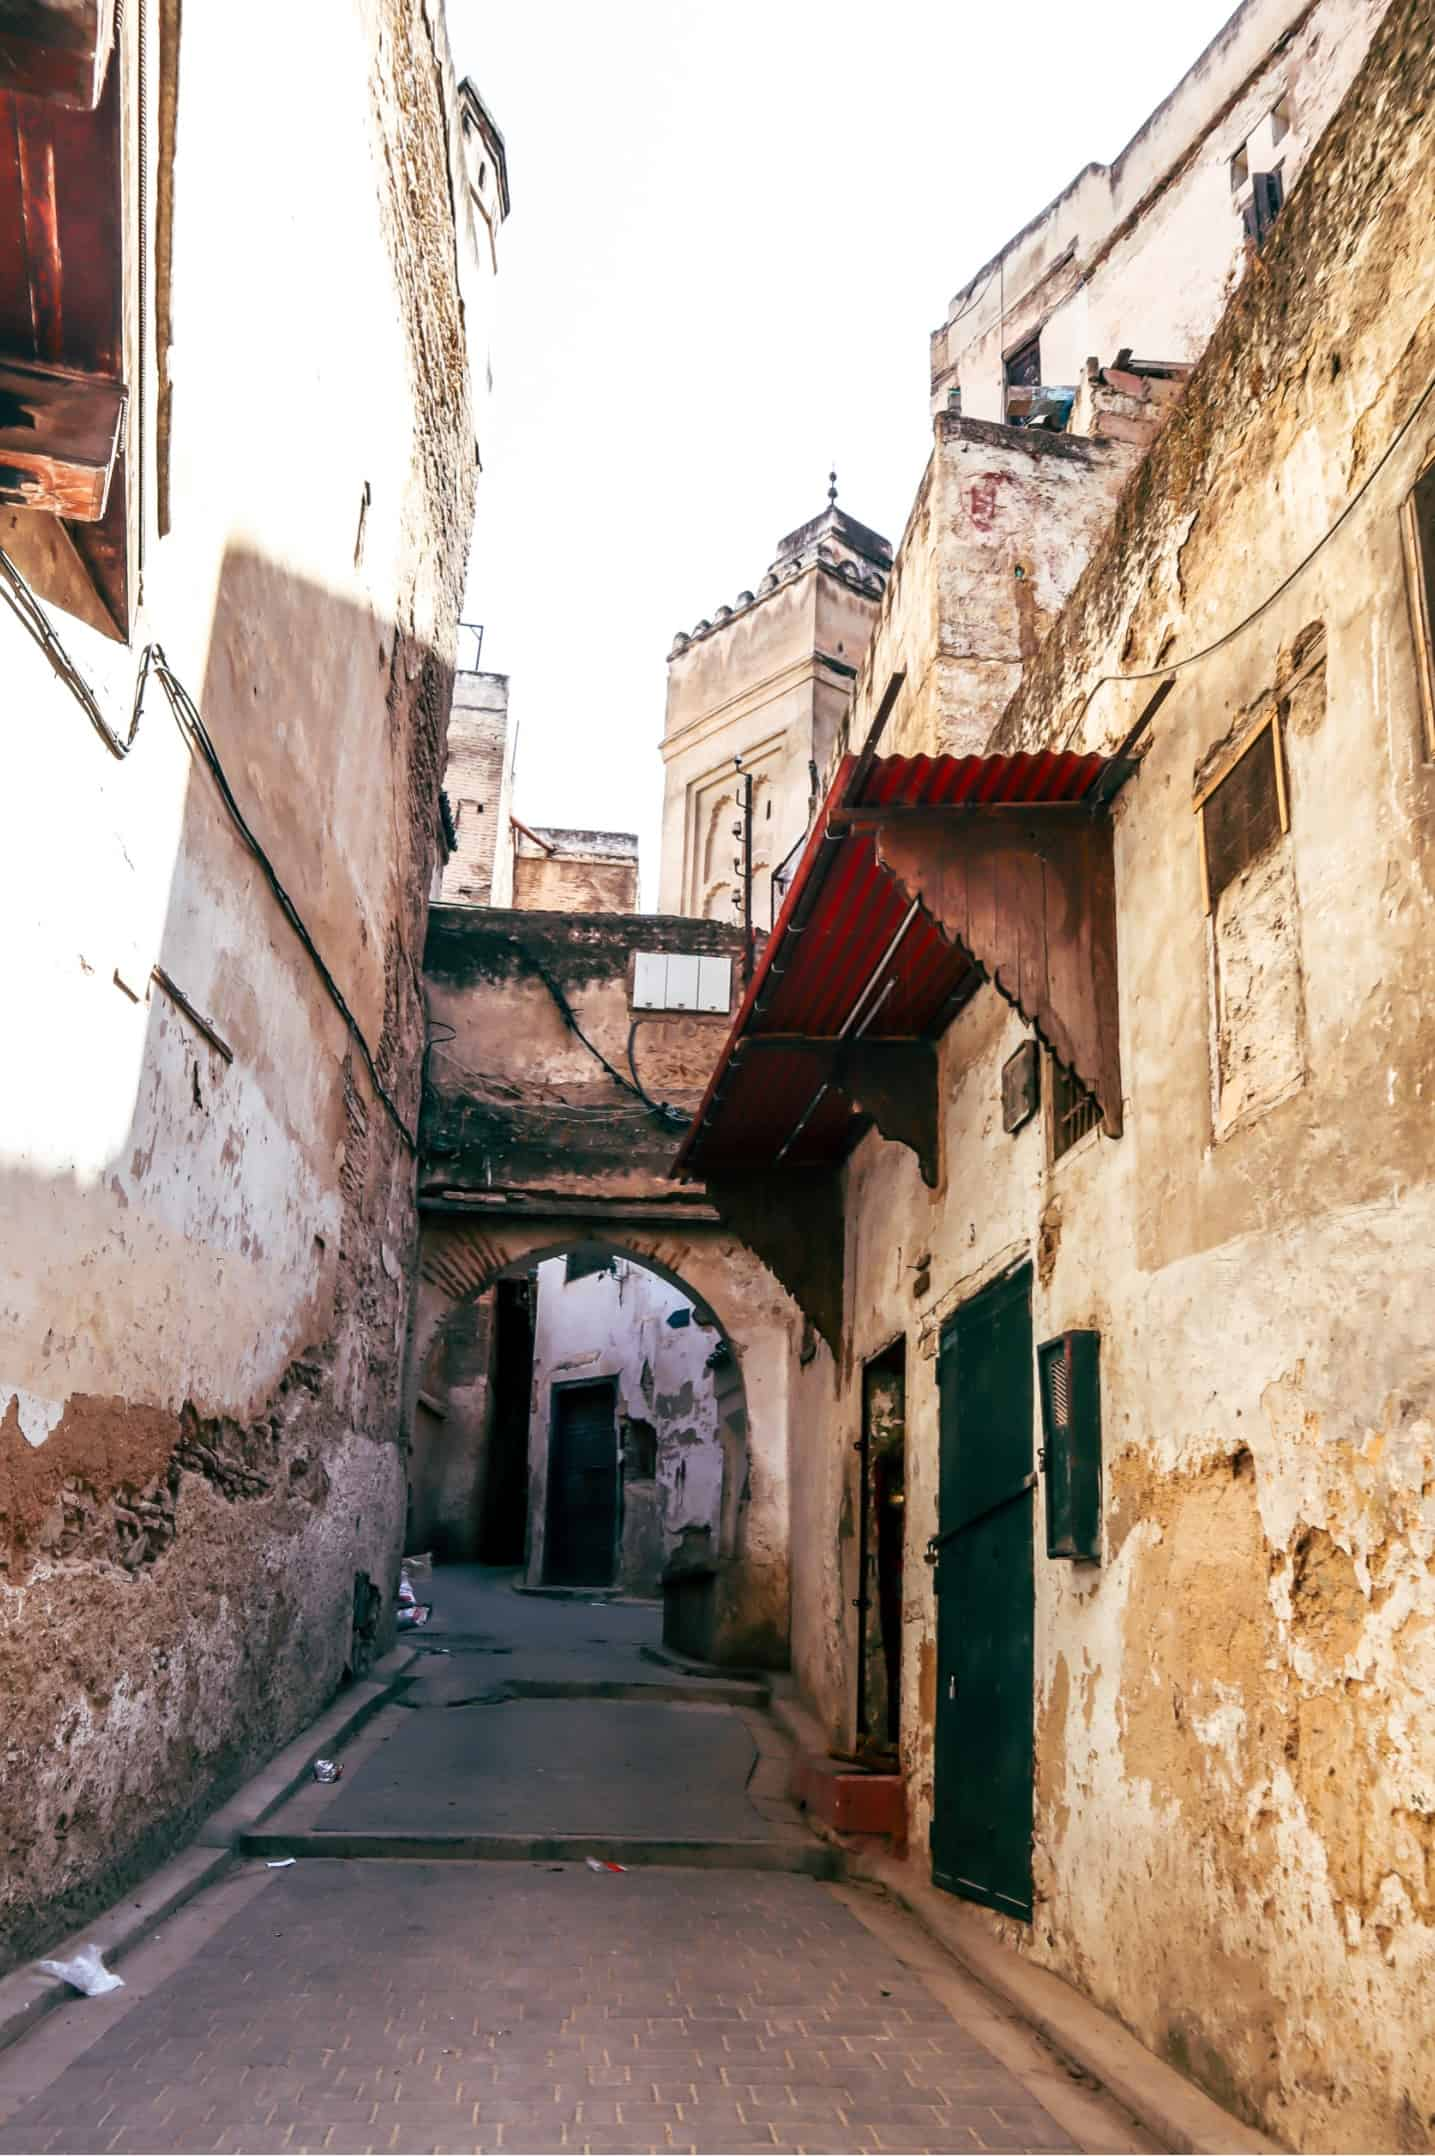 streets of Fes Morocco